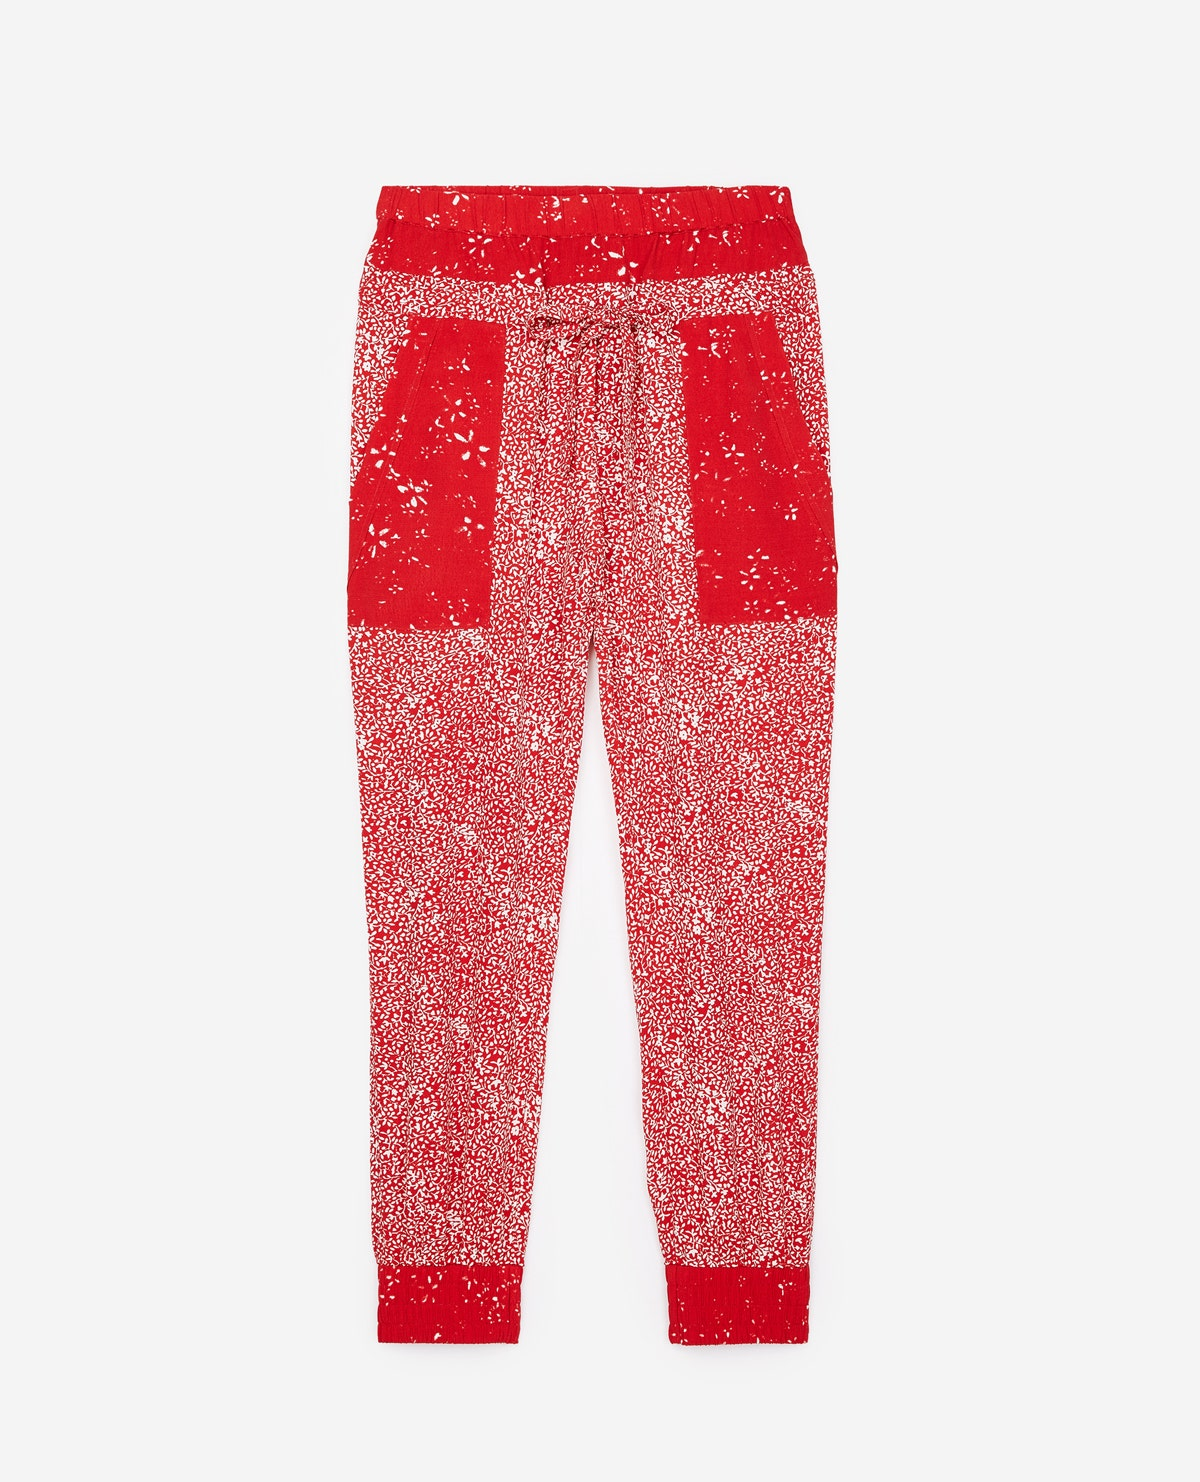 The Kooples - Moonflowers flowing red trousers - MUJER